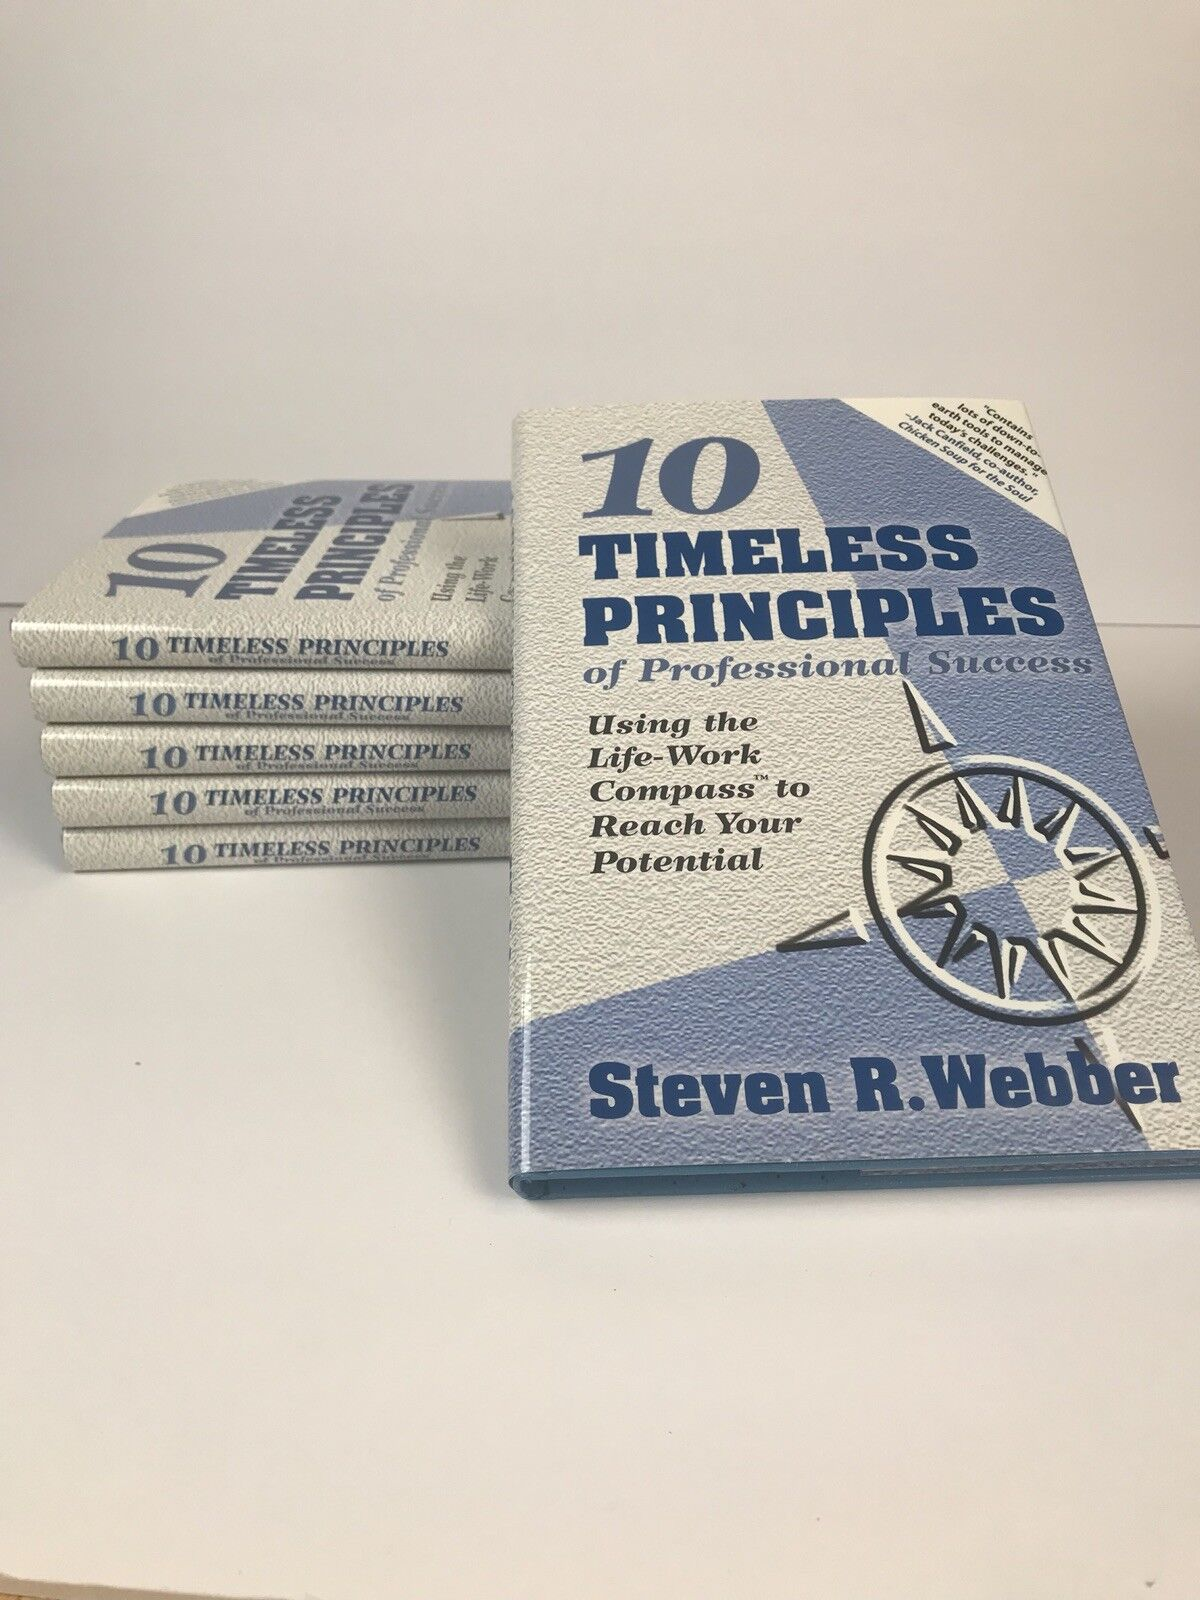 The 10 Timeless Principles of Professional Success : Using the Career  Compass to Navigate Your Way in Life and Reach Your Potential at Work by Steve  Webber ...